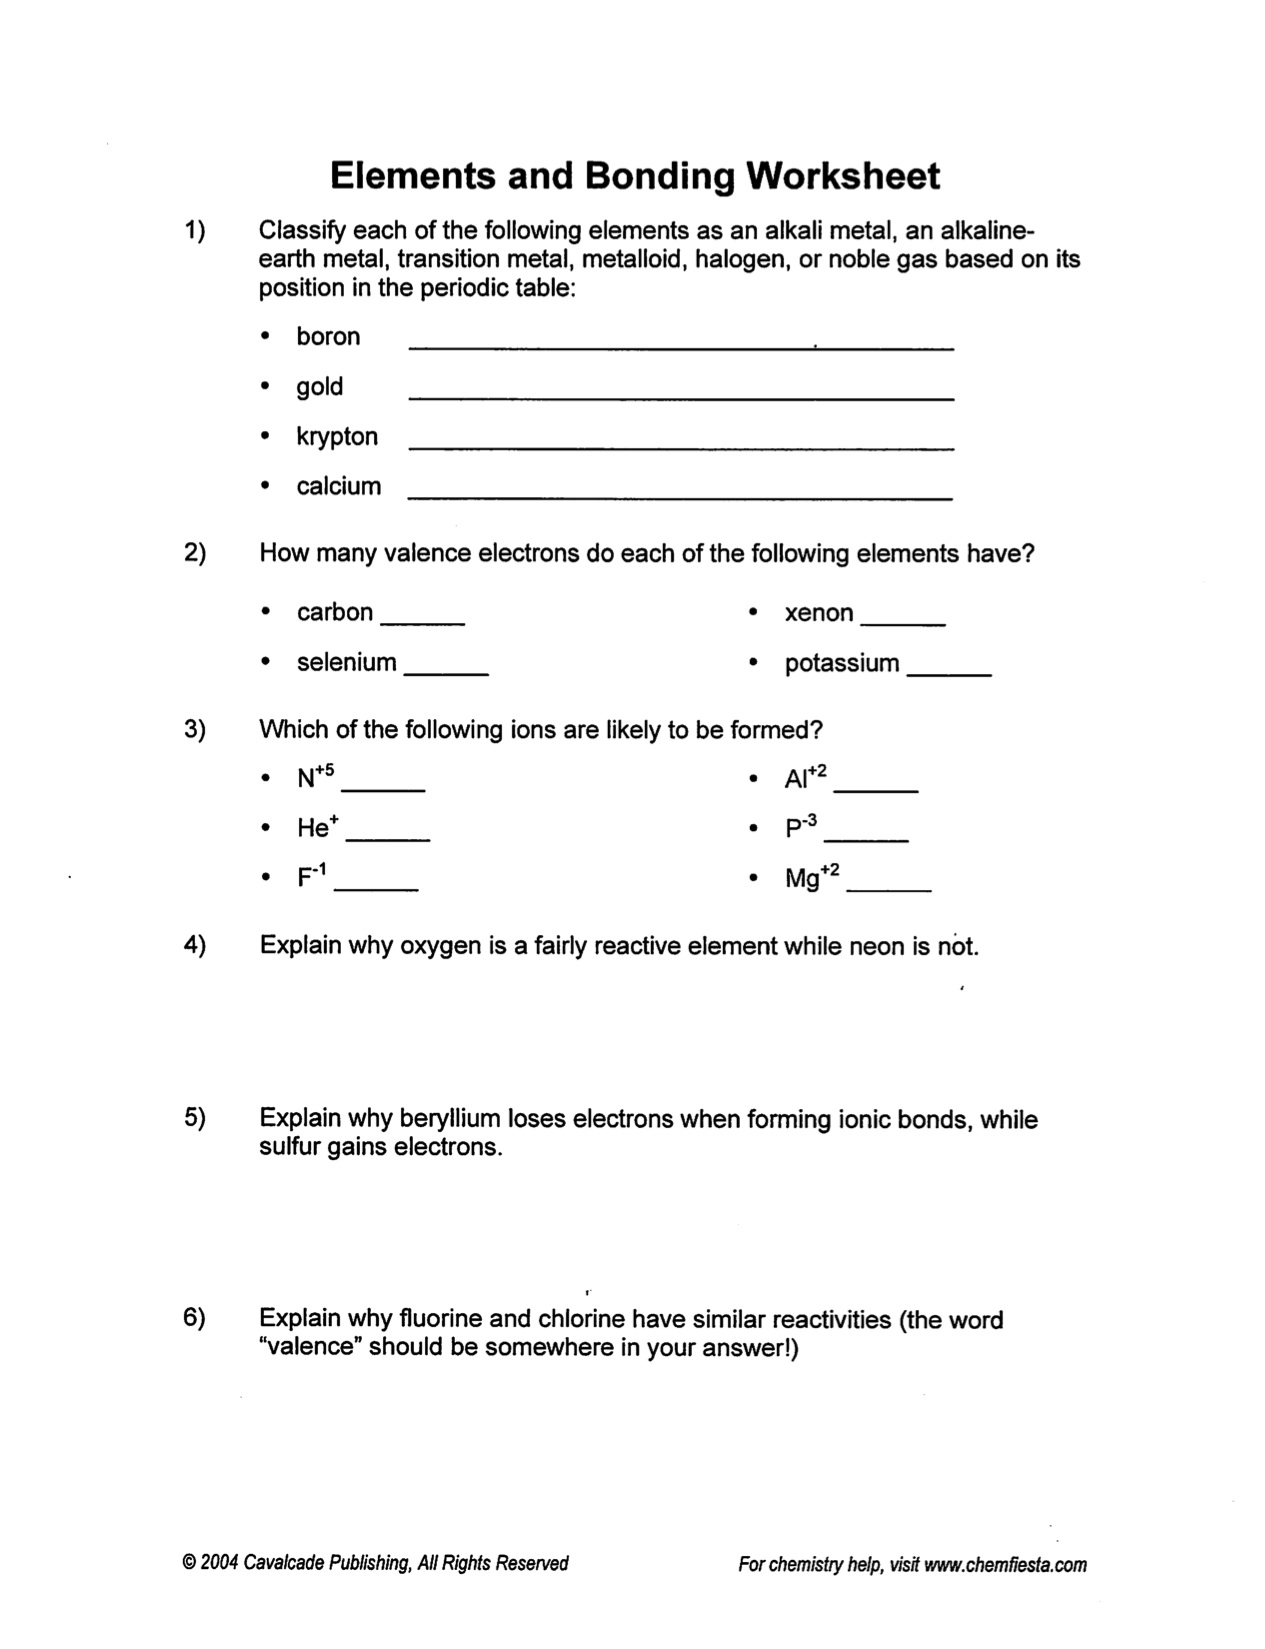 Warren County Public Schools – Bonding and Chemical Formulas Worksheet Answers